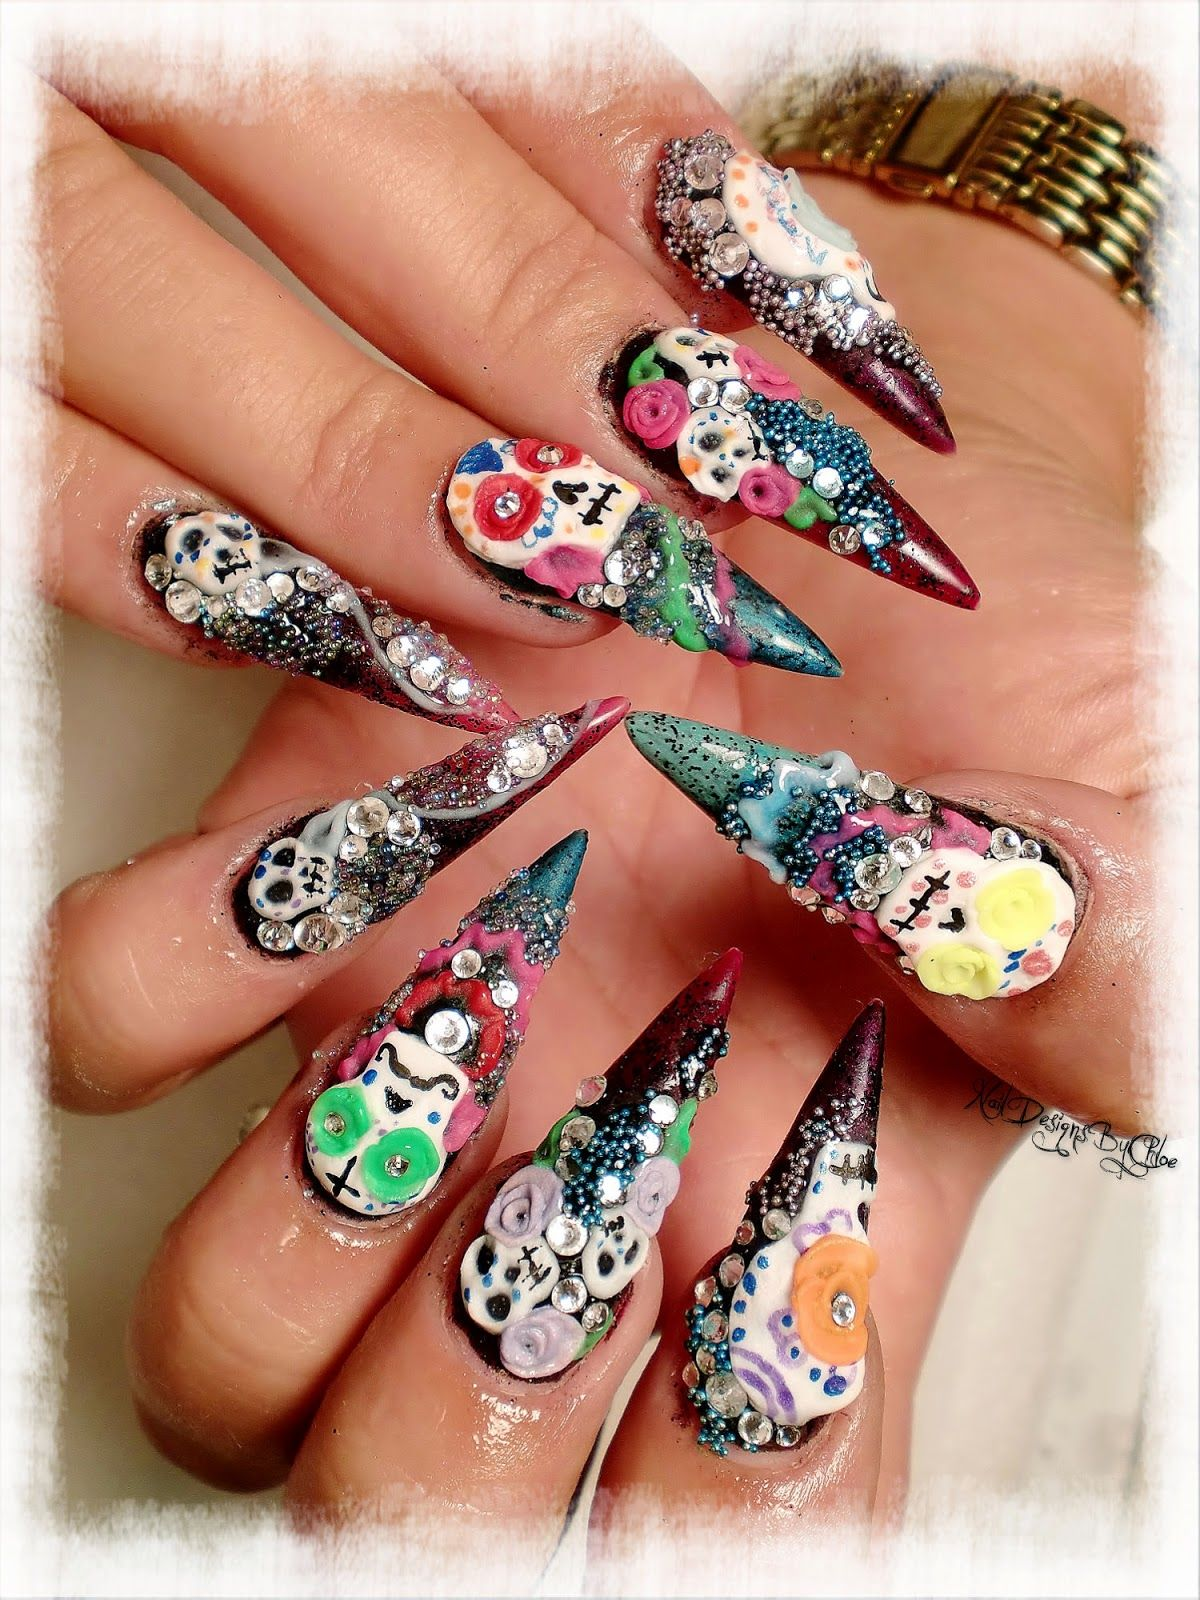 Nail Designs By Chloe: Day of the Dead | My favorite nails ...